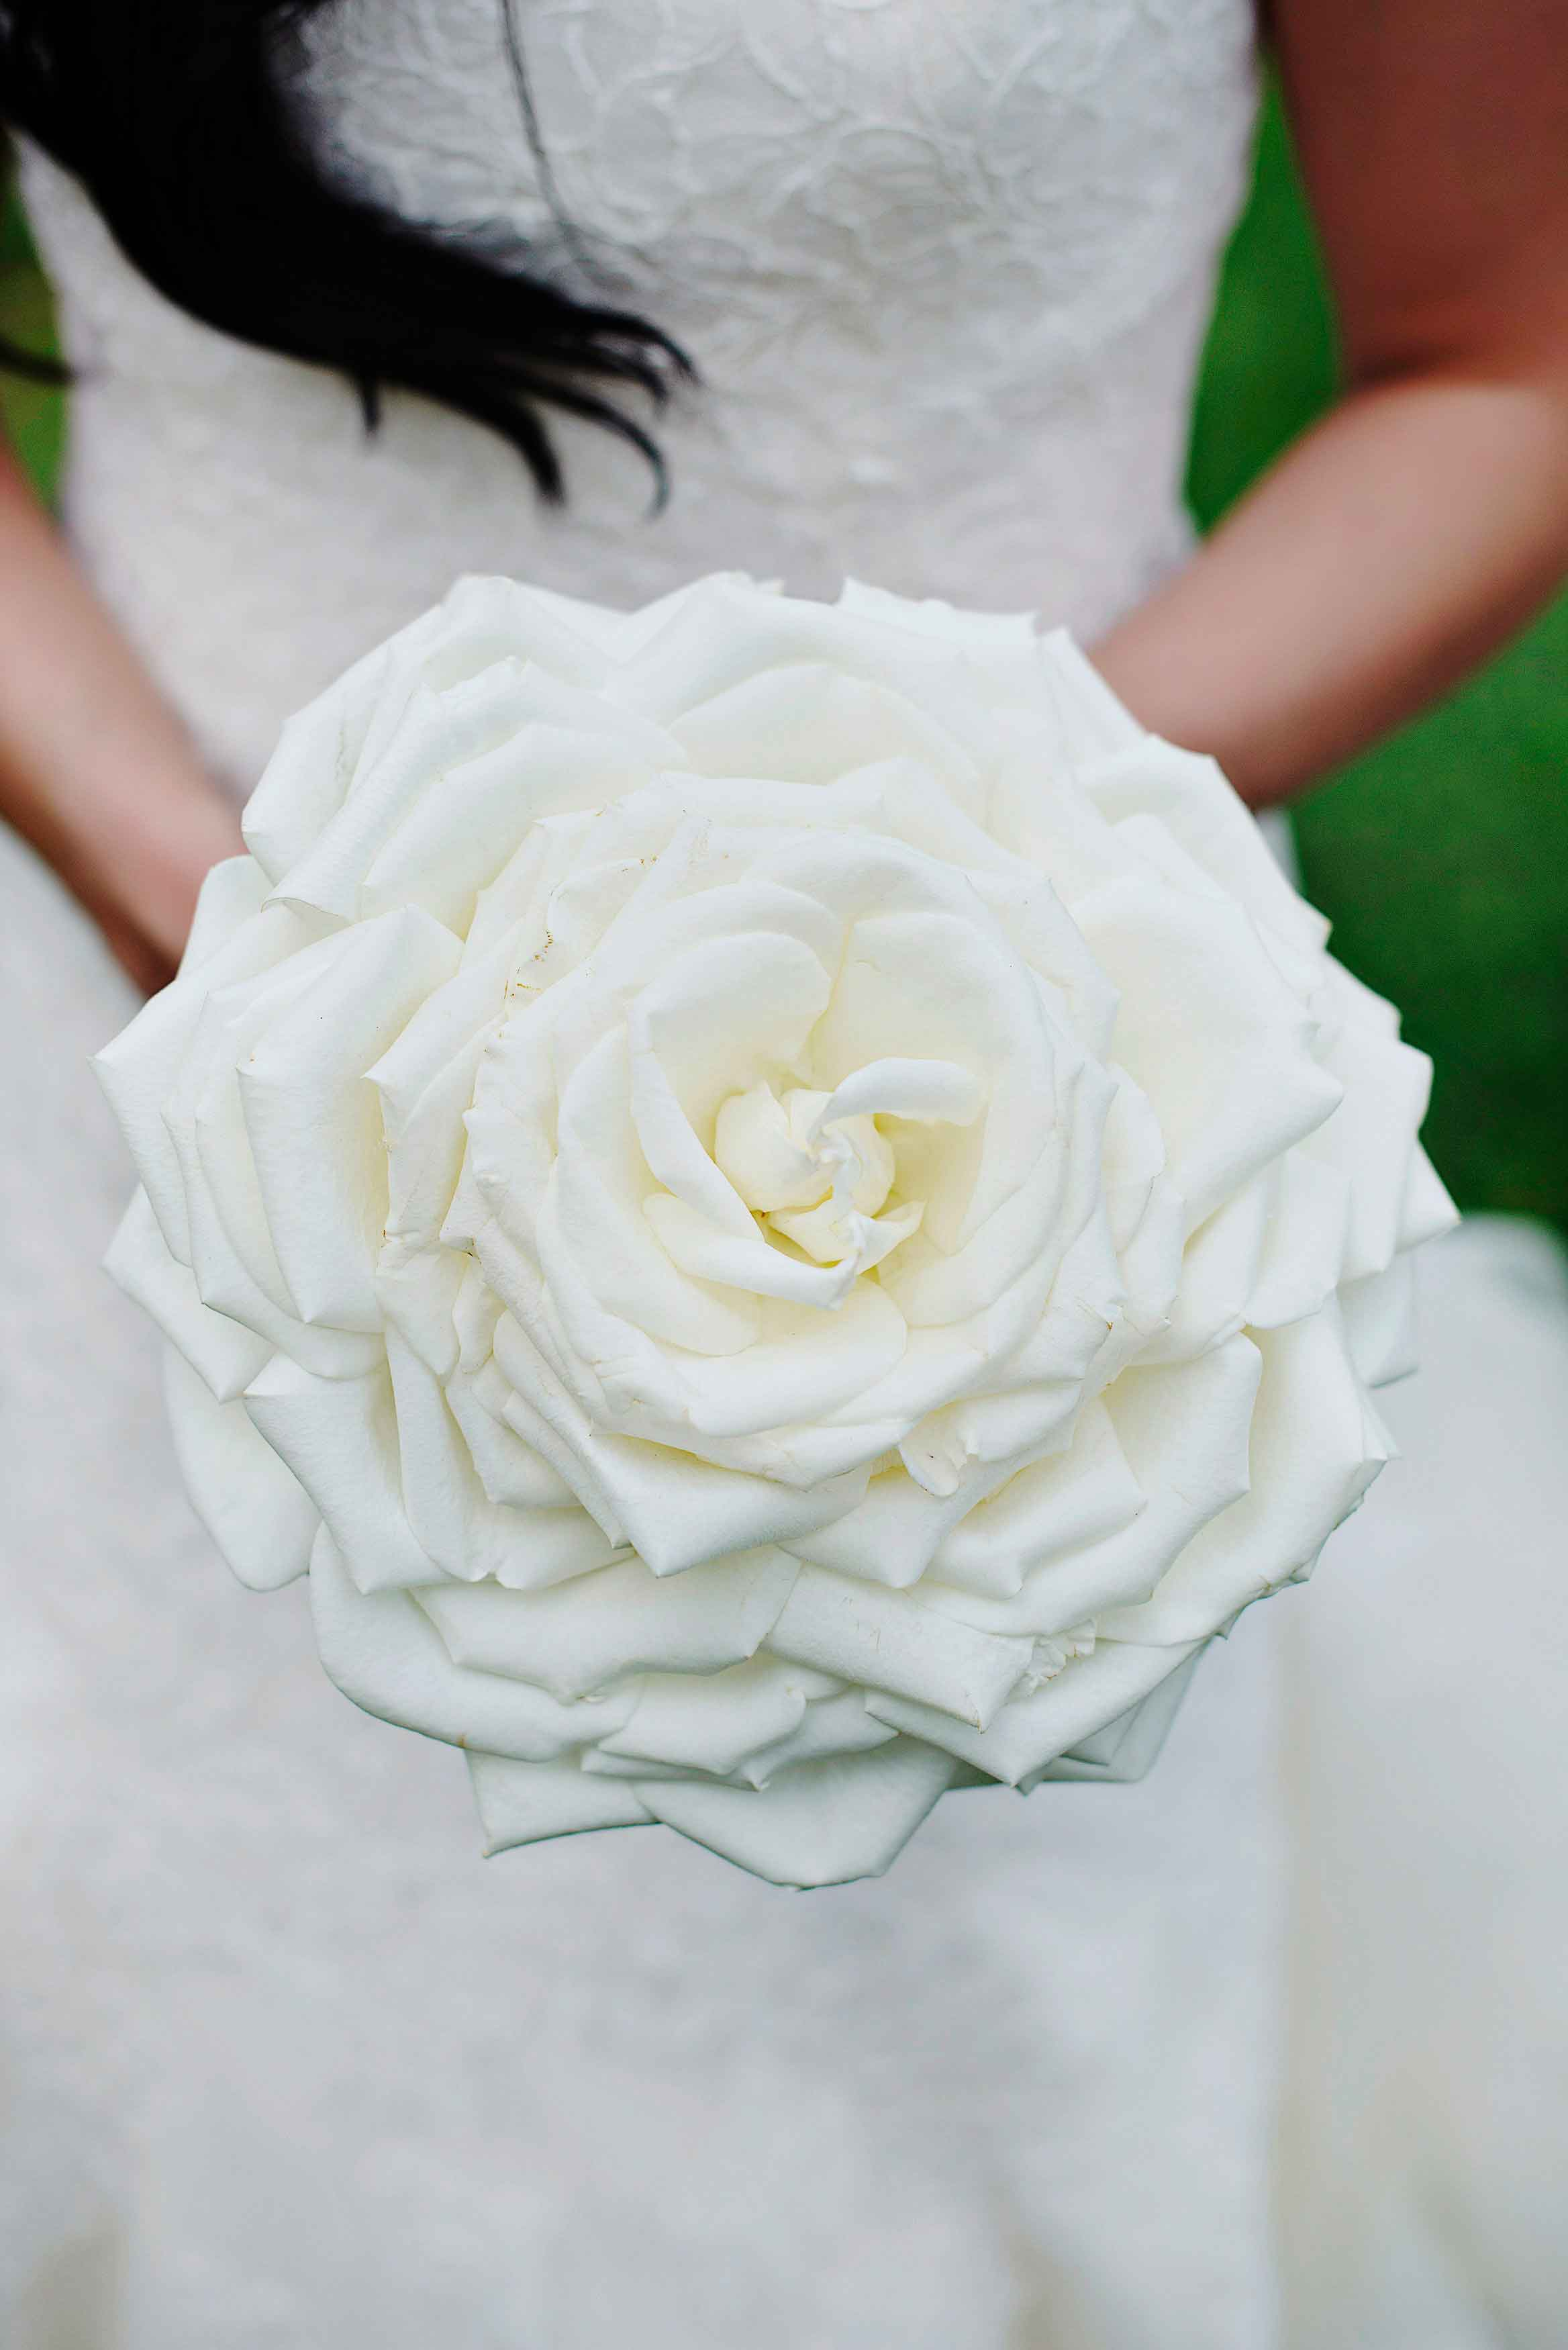 Composite bouquet style glamelia bouquet white flowers petals made to look like one big flower